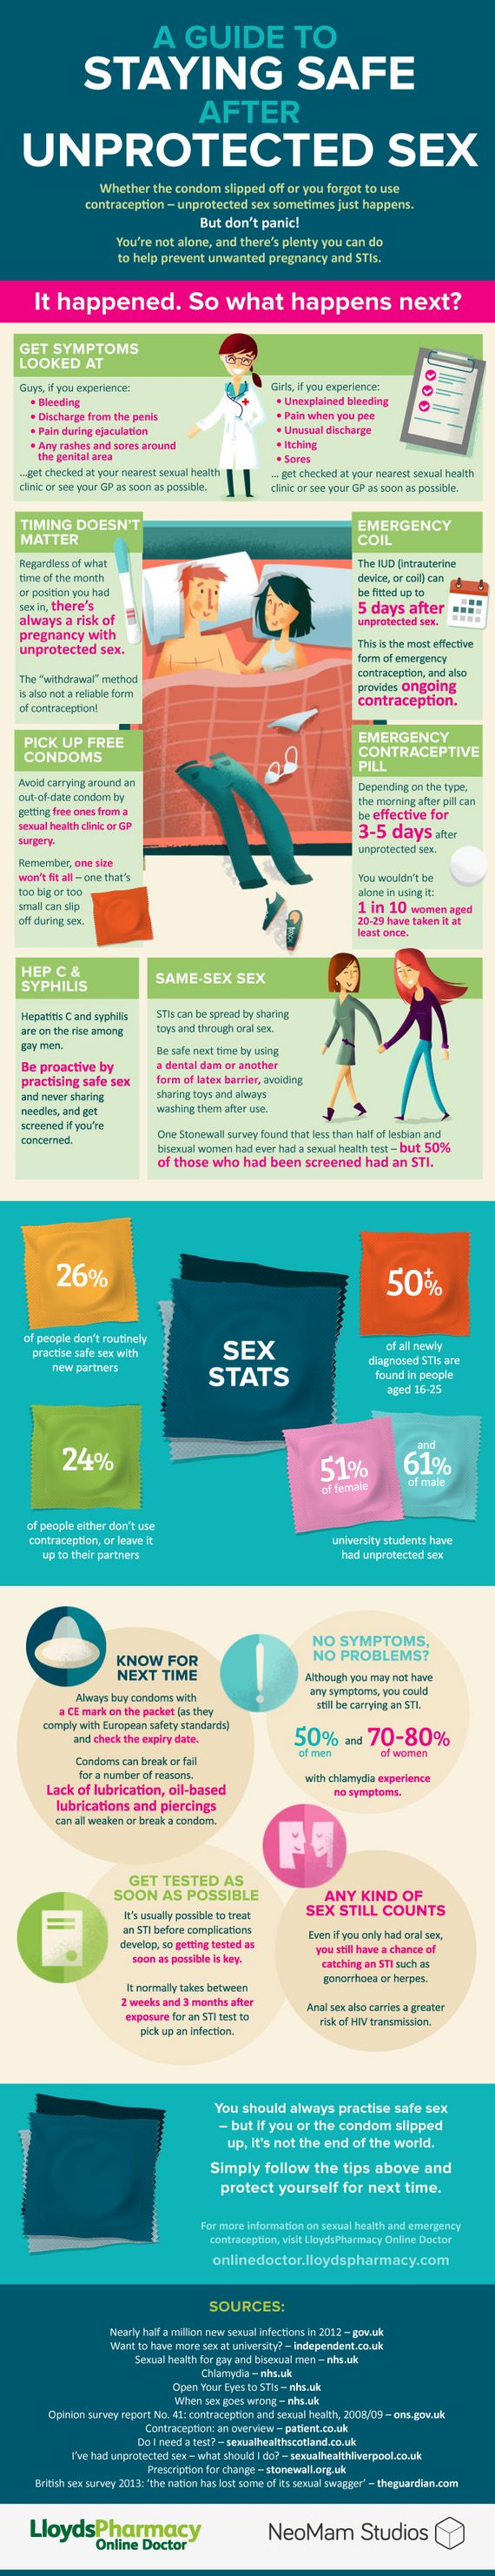 A-Guide-to-Staying-Safe-After-Sex-V5